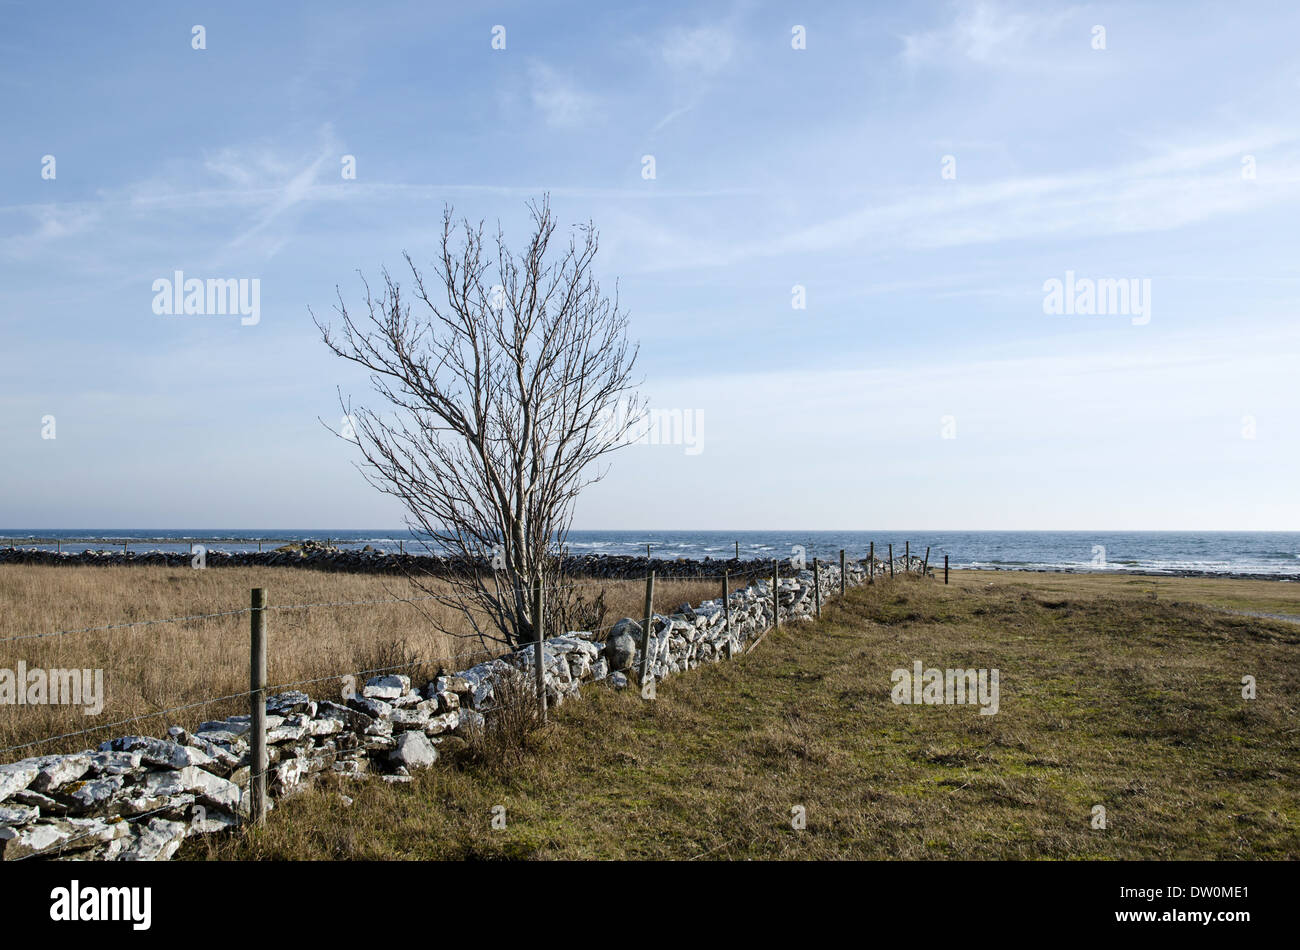 Barb wire fence at an old stonewall by a rural swedish coast - Stock Image